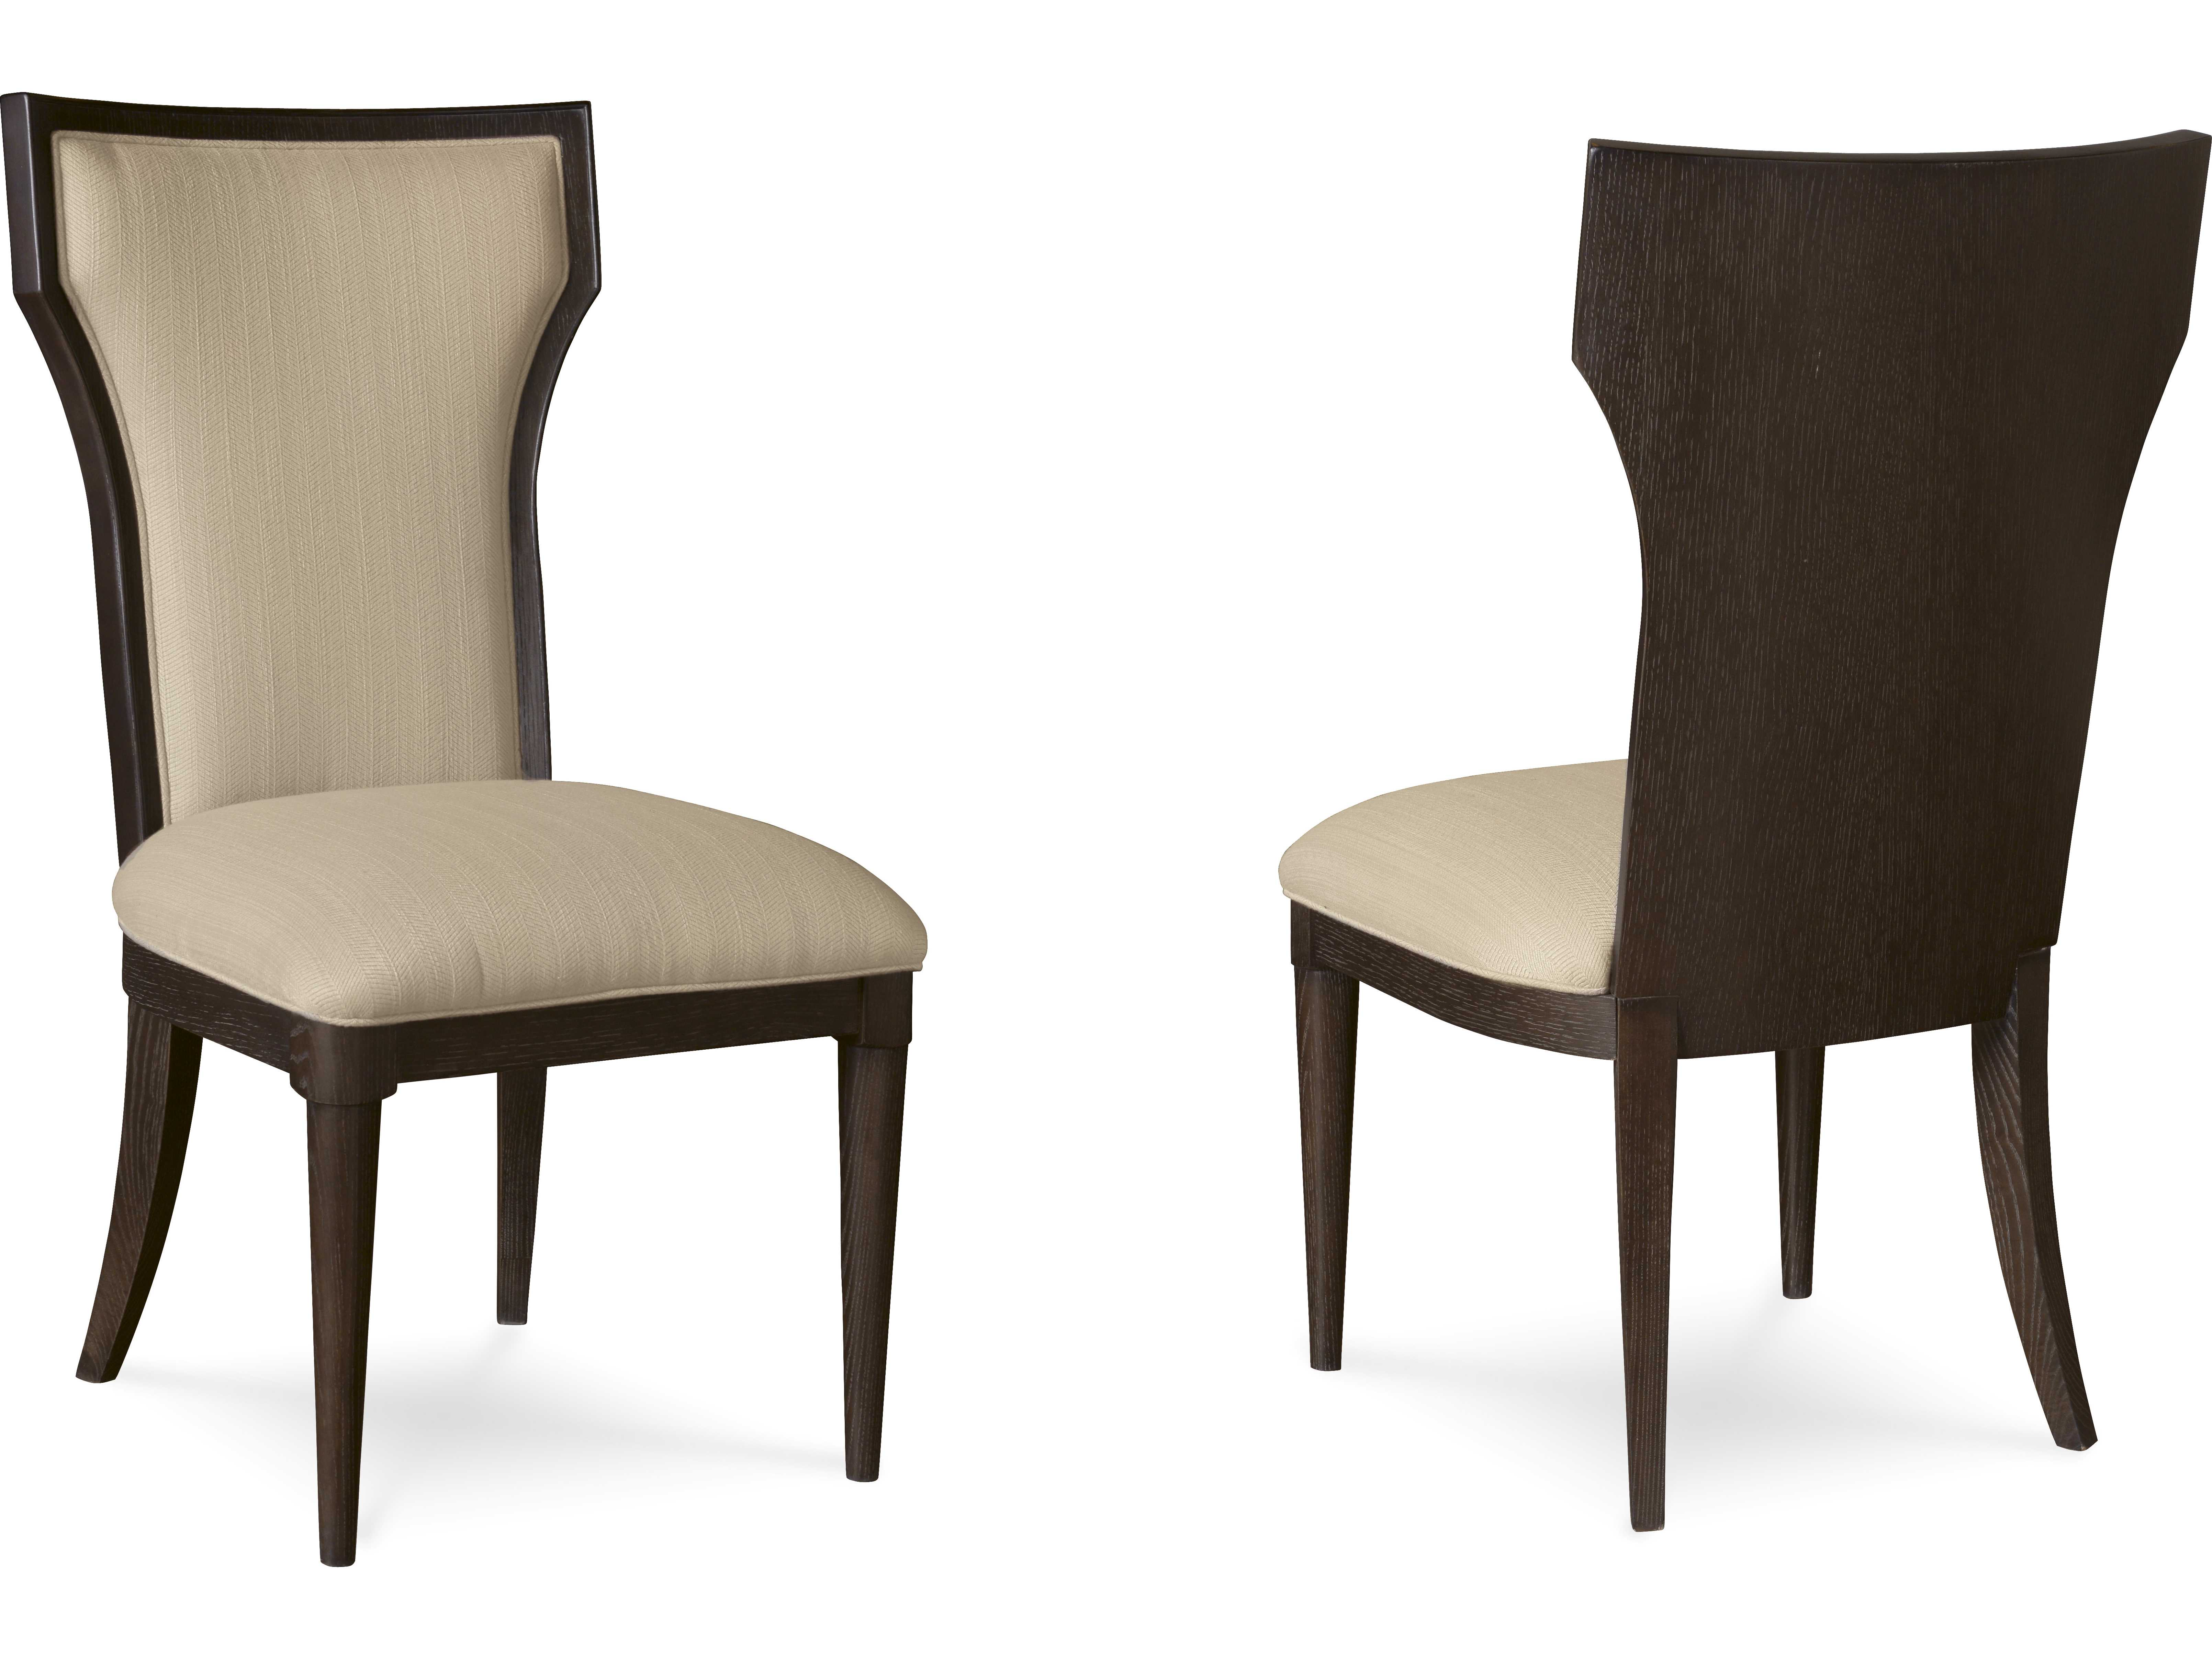 Art Furniture Greenpoint Coffee Bean Dining Side Chair Sold In 2 At2142042304